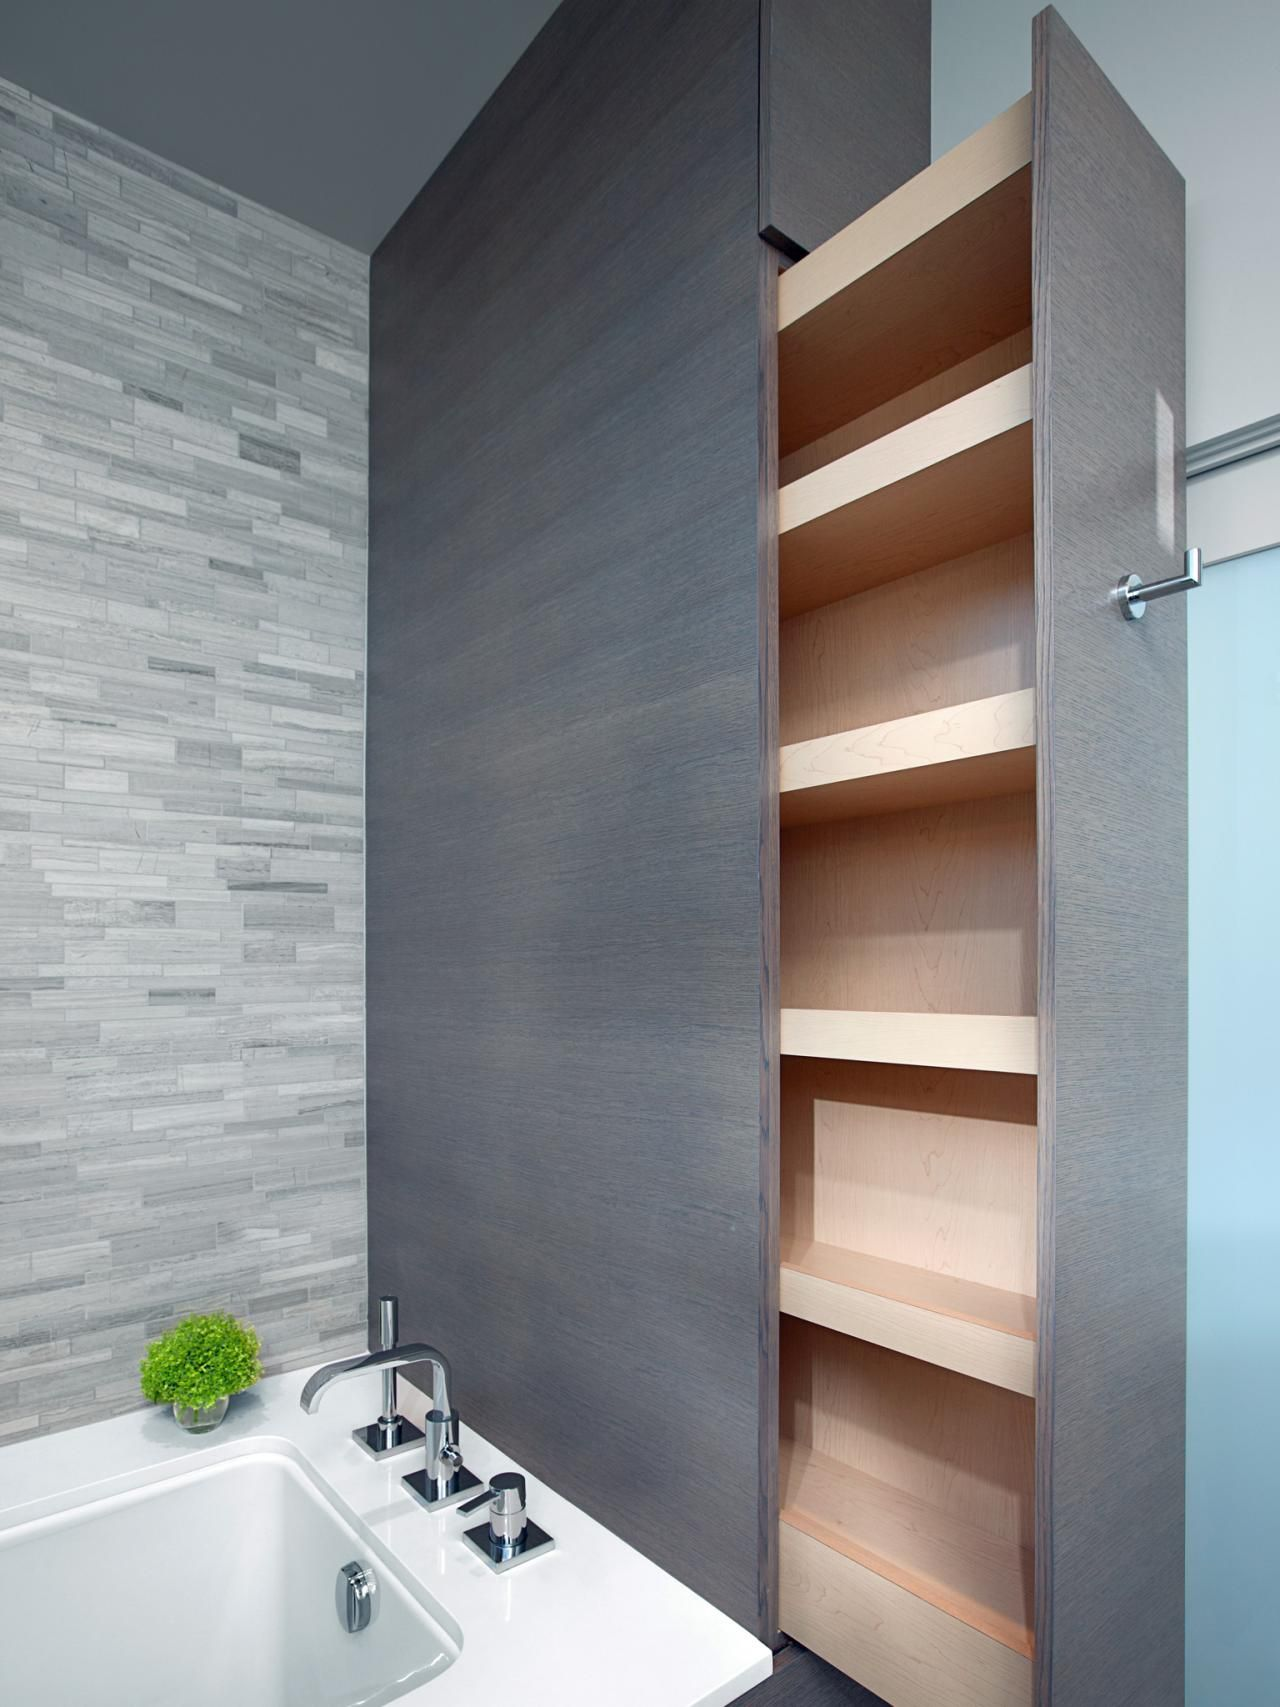 Creative Bathroom Storage Ideas Bathroom Design Choose Floor Plan & Bath Remodeling Materials